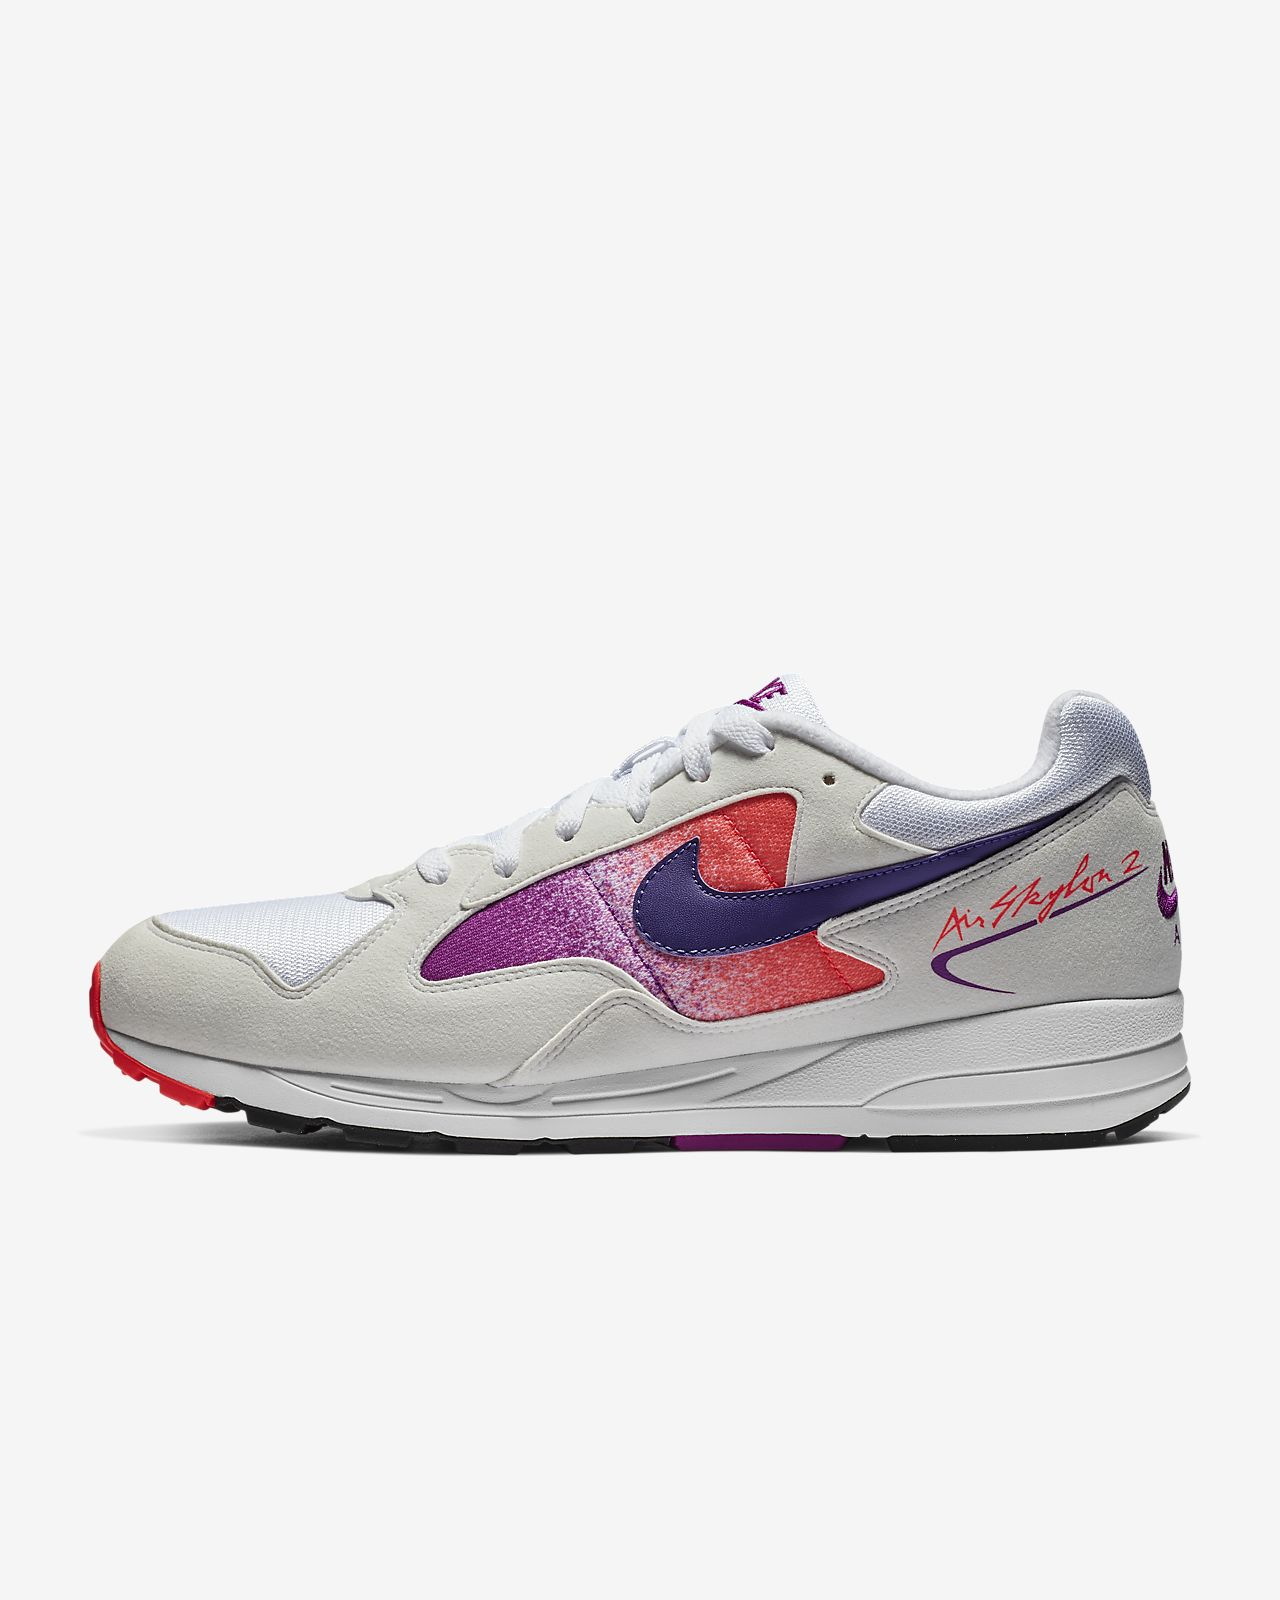 Nike Air Skylon II 男子运动鞋